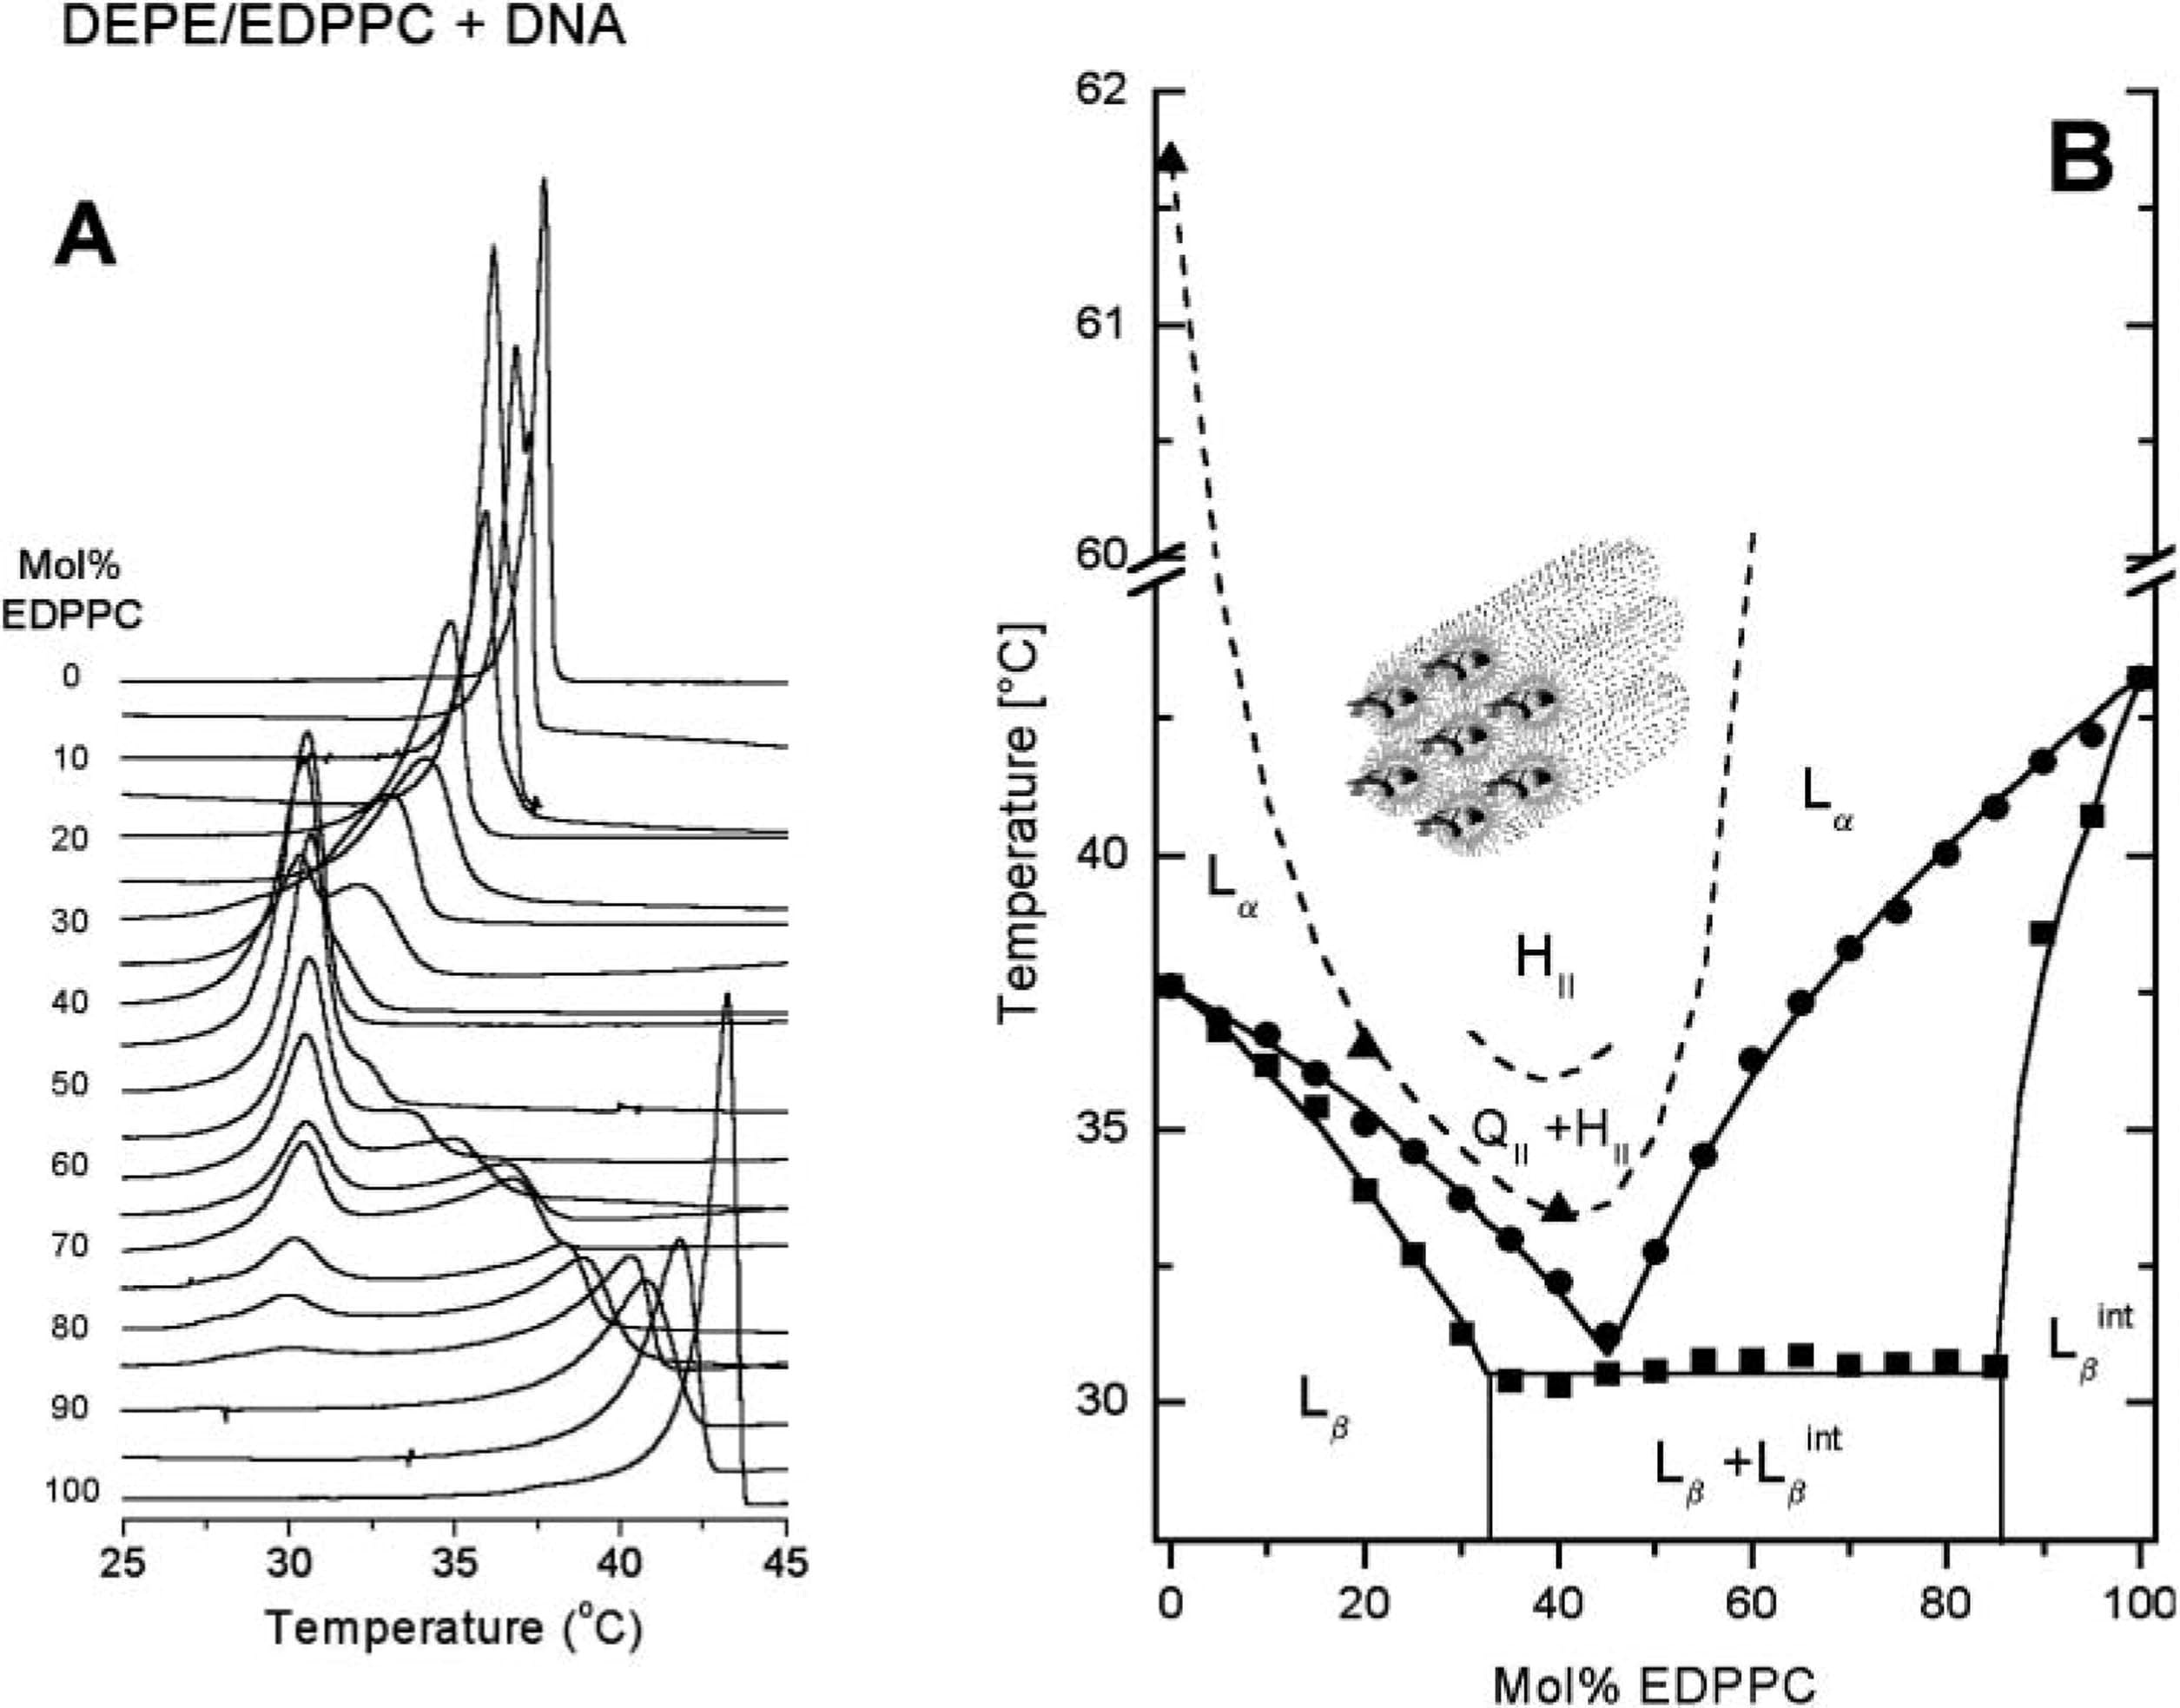 Mixtures Of Cationic Lipid O Ethylphosphatidylcholine With Membrane Lipids And Dna Phase